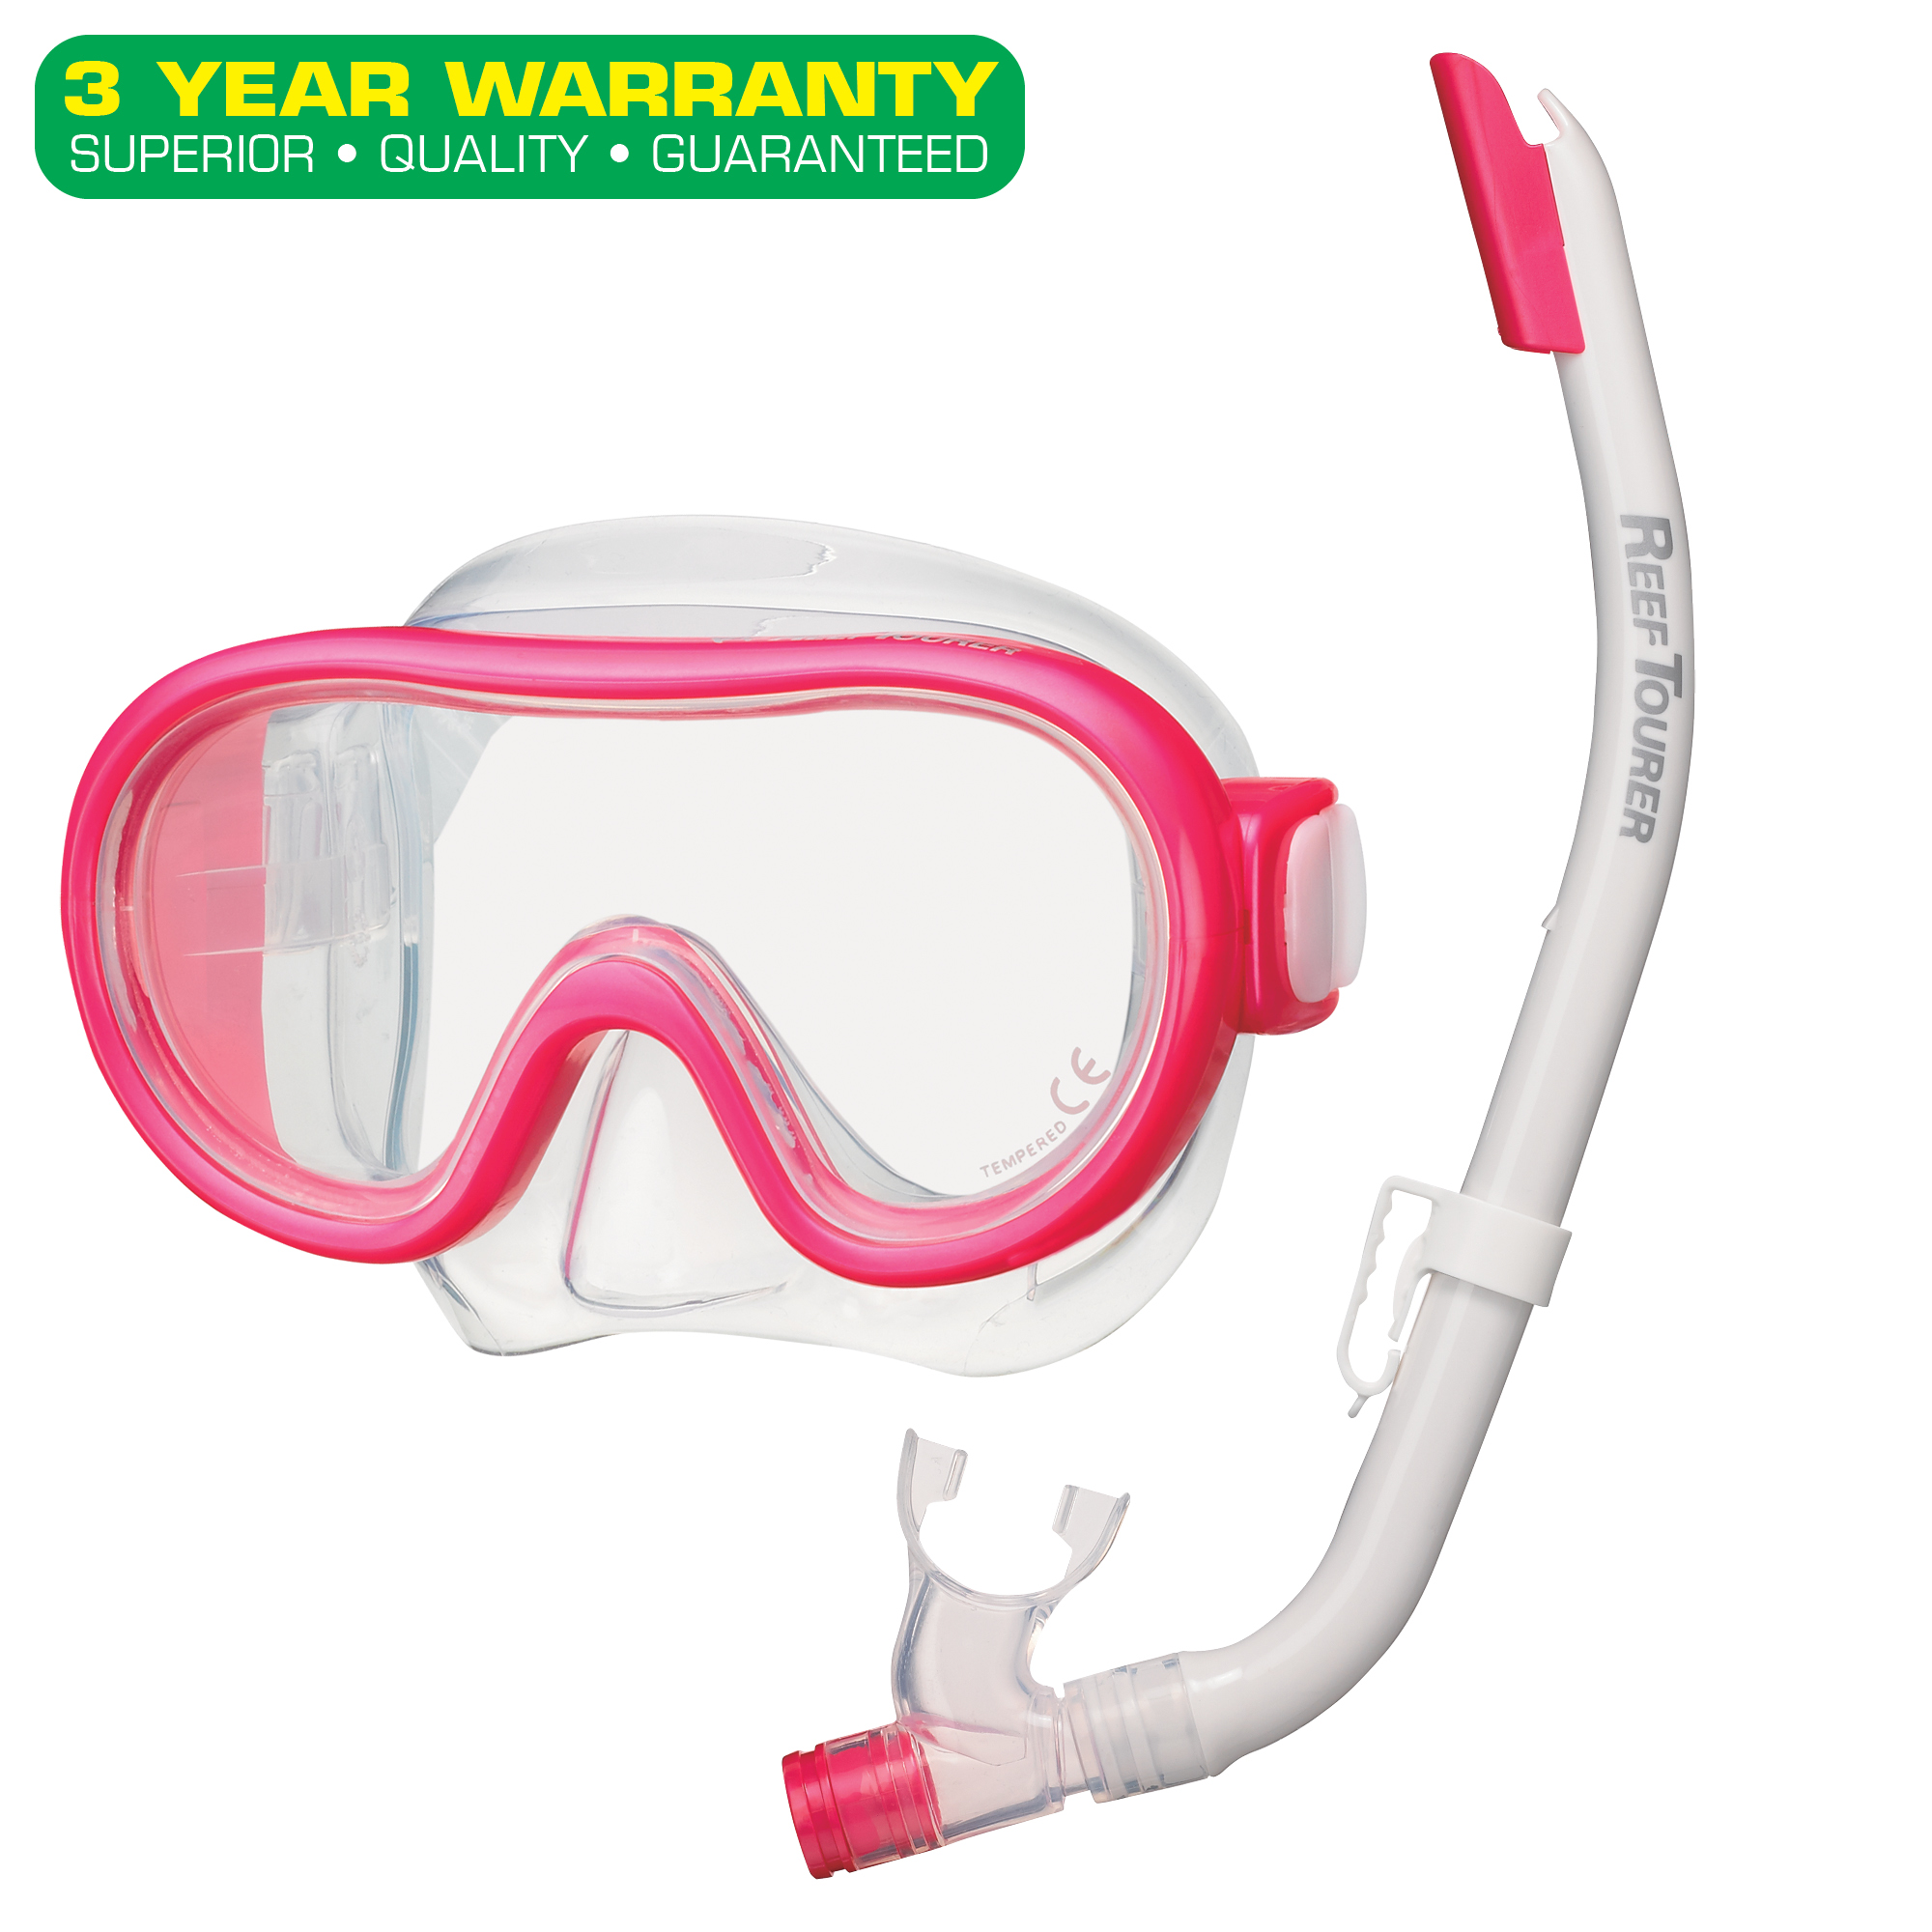 Reef Tourer Youth Single-Window Mask & Snorkel Combo Set for Kids by Tabata USA, Inc.